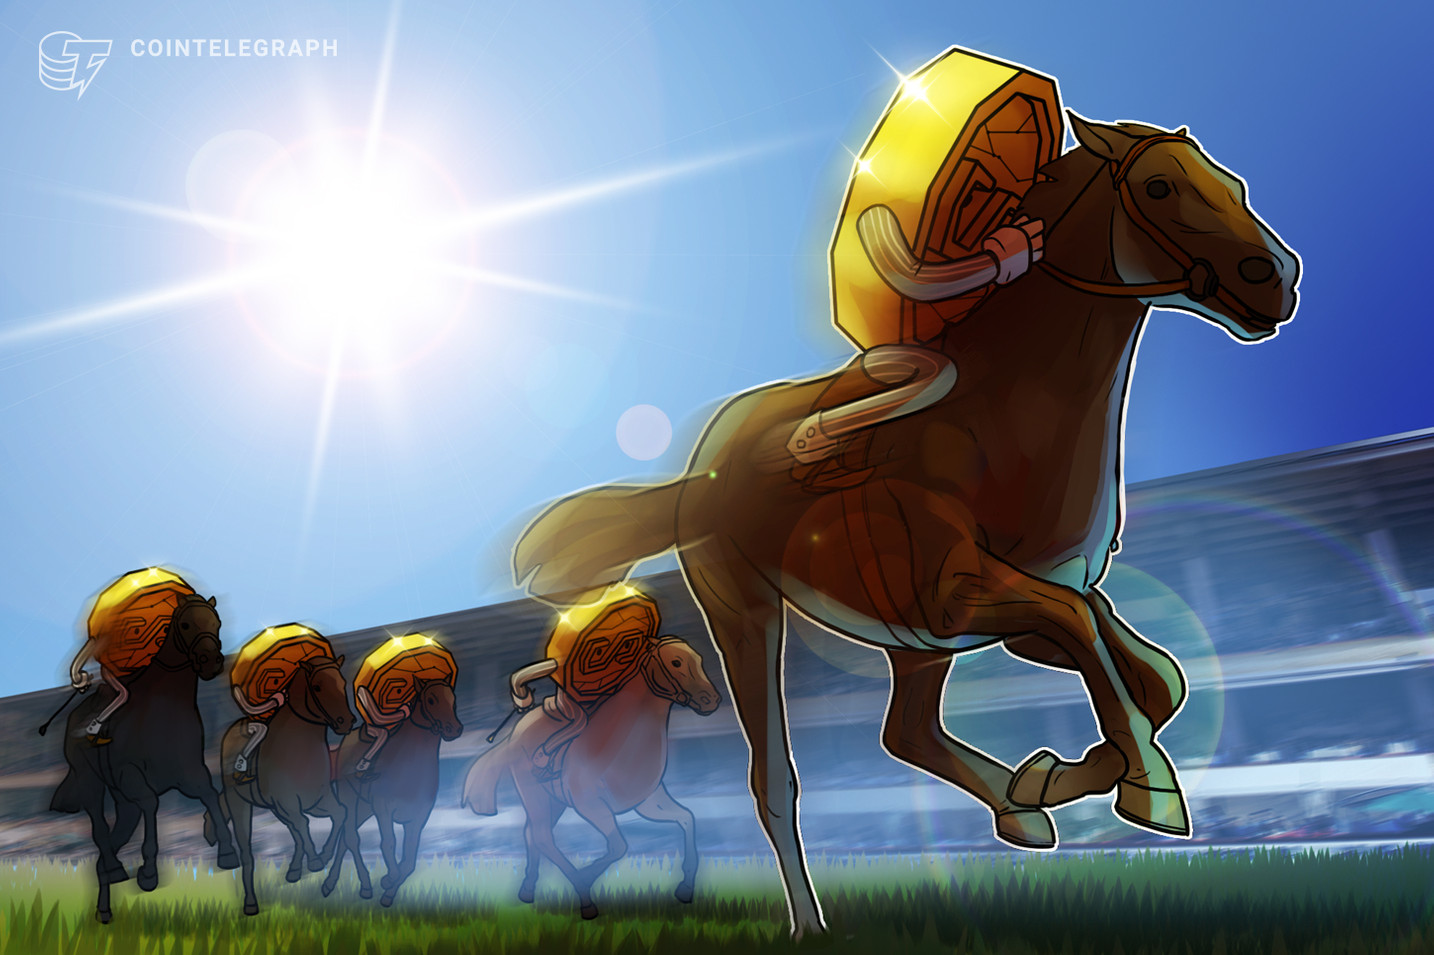 Tyler Winklevoss: Stablecoin Race to Begin When Wall St Embraces DeFi